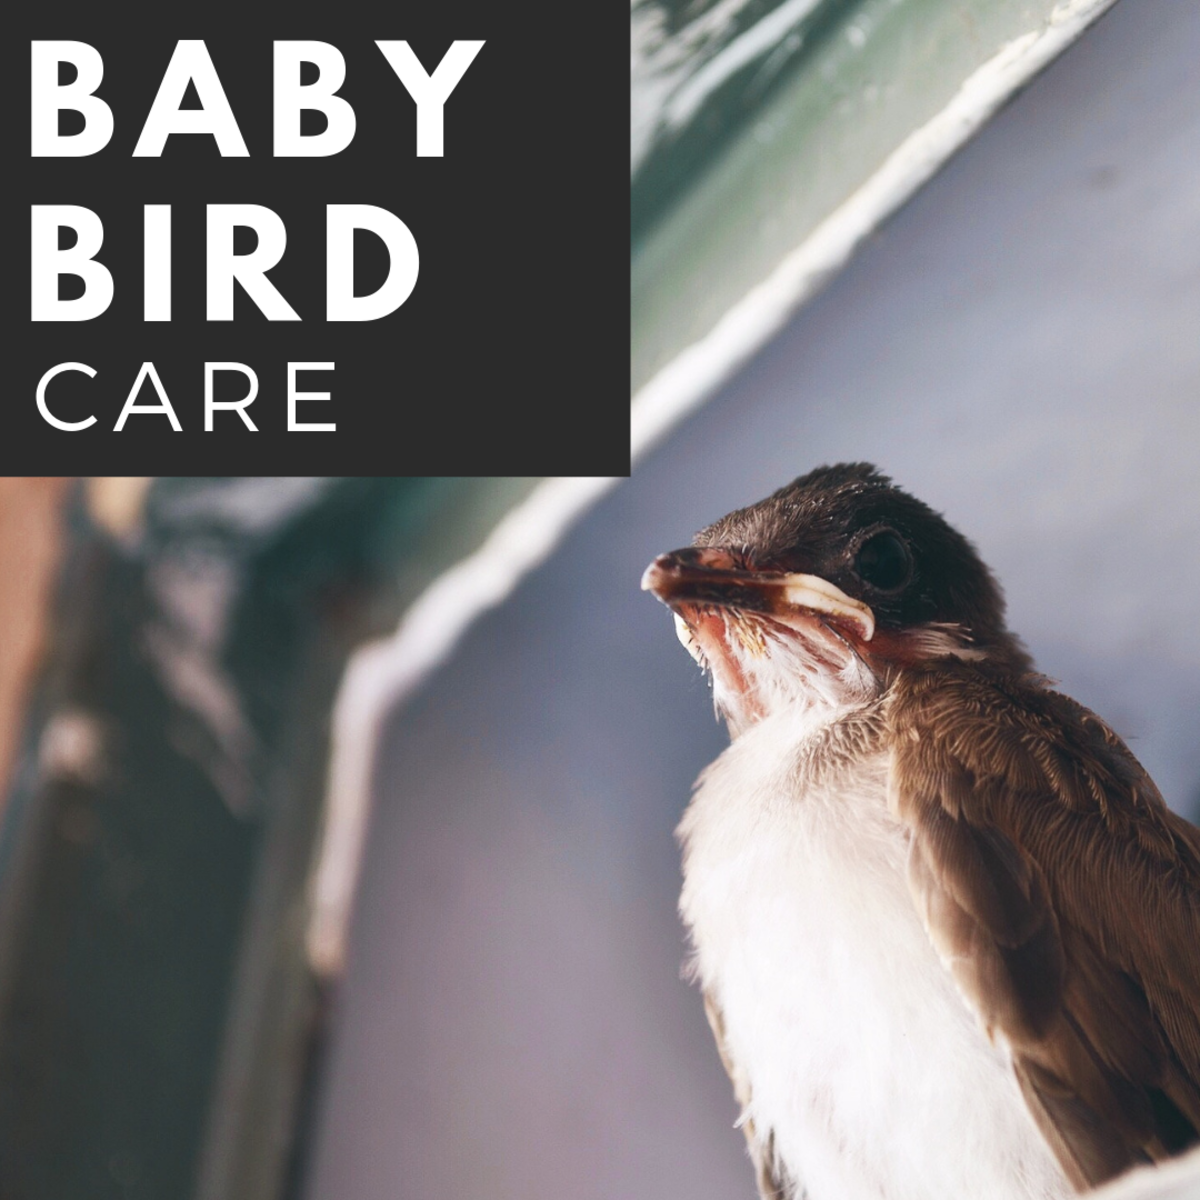 What to Do When You Find a Baby Bird—Helping Wildlife